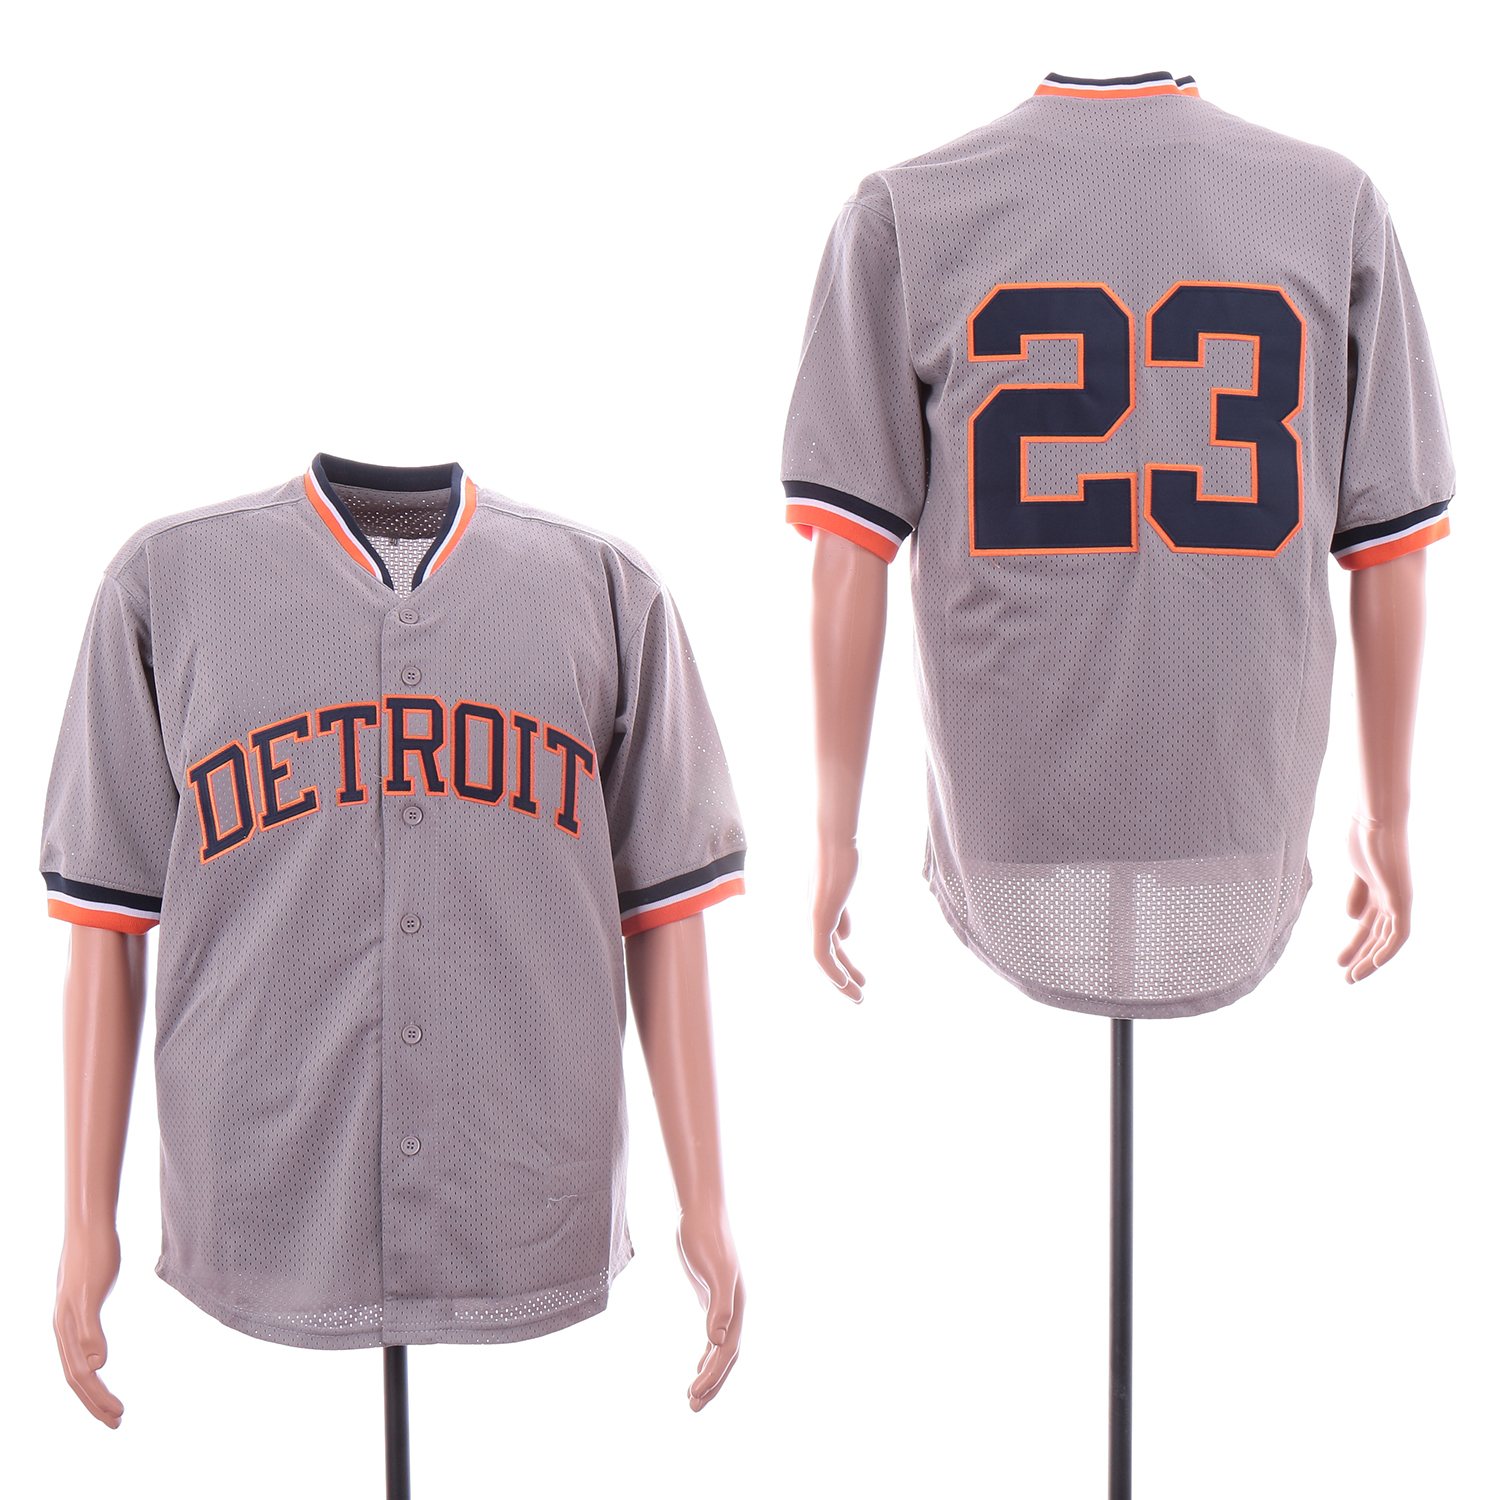 Tigers 23 Kirk Gibson Gray BP Jersey